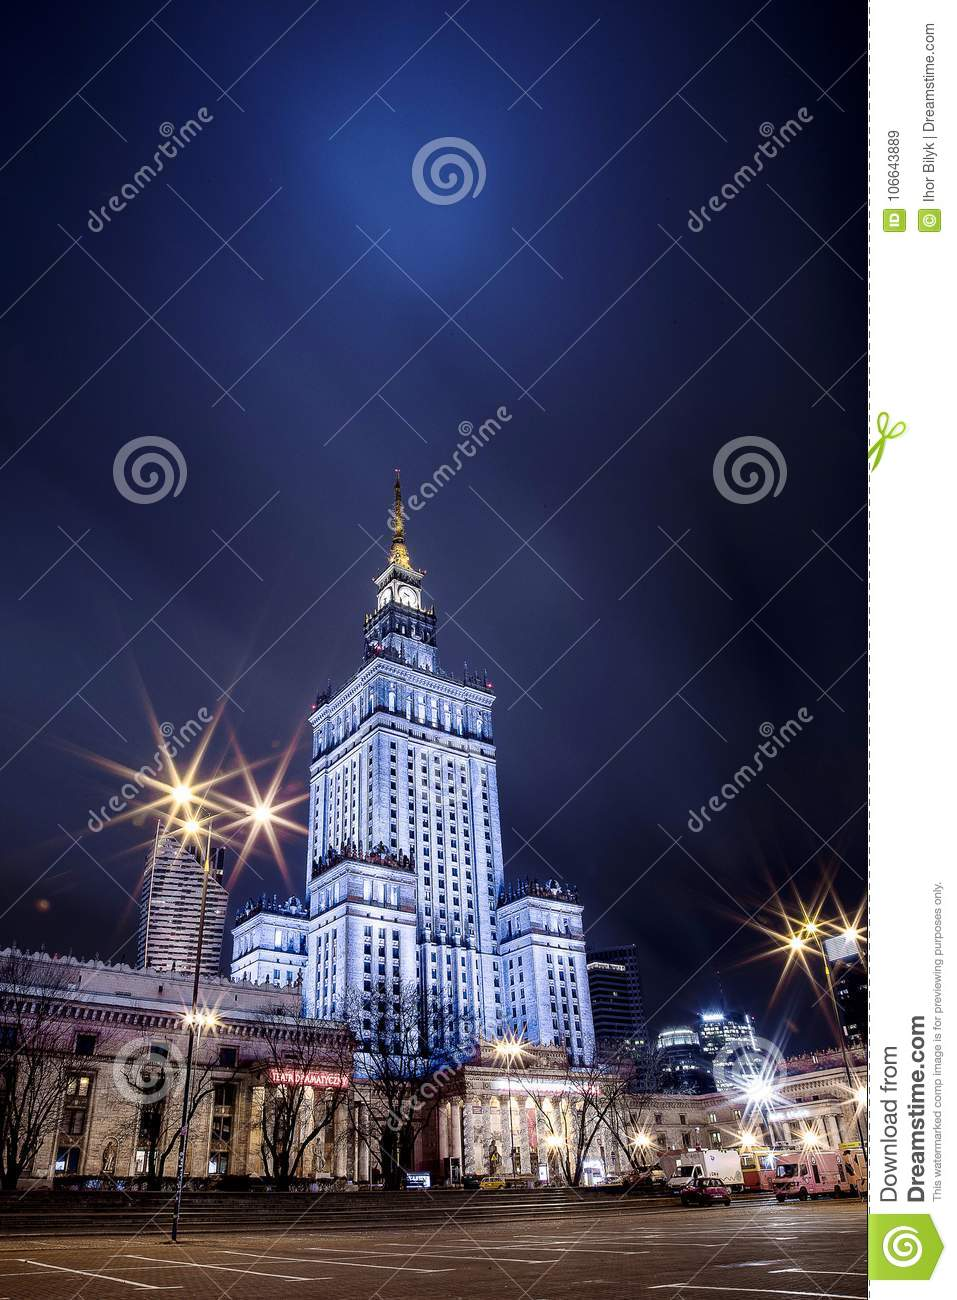 High-rise building. Center of Warsaw Night city. Warszawa. Poland. Polska. Palace of Culture and Science.